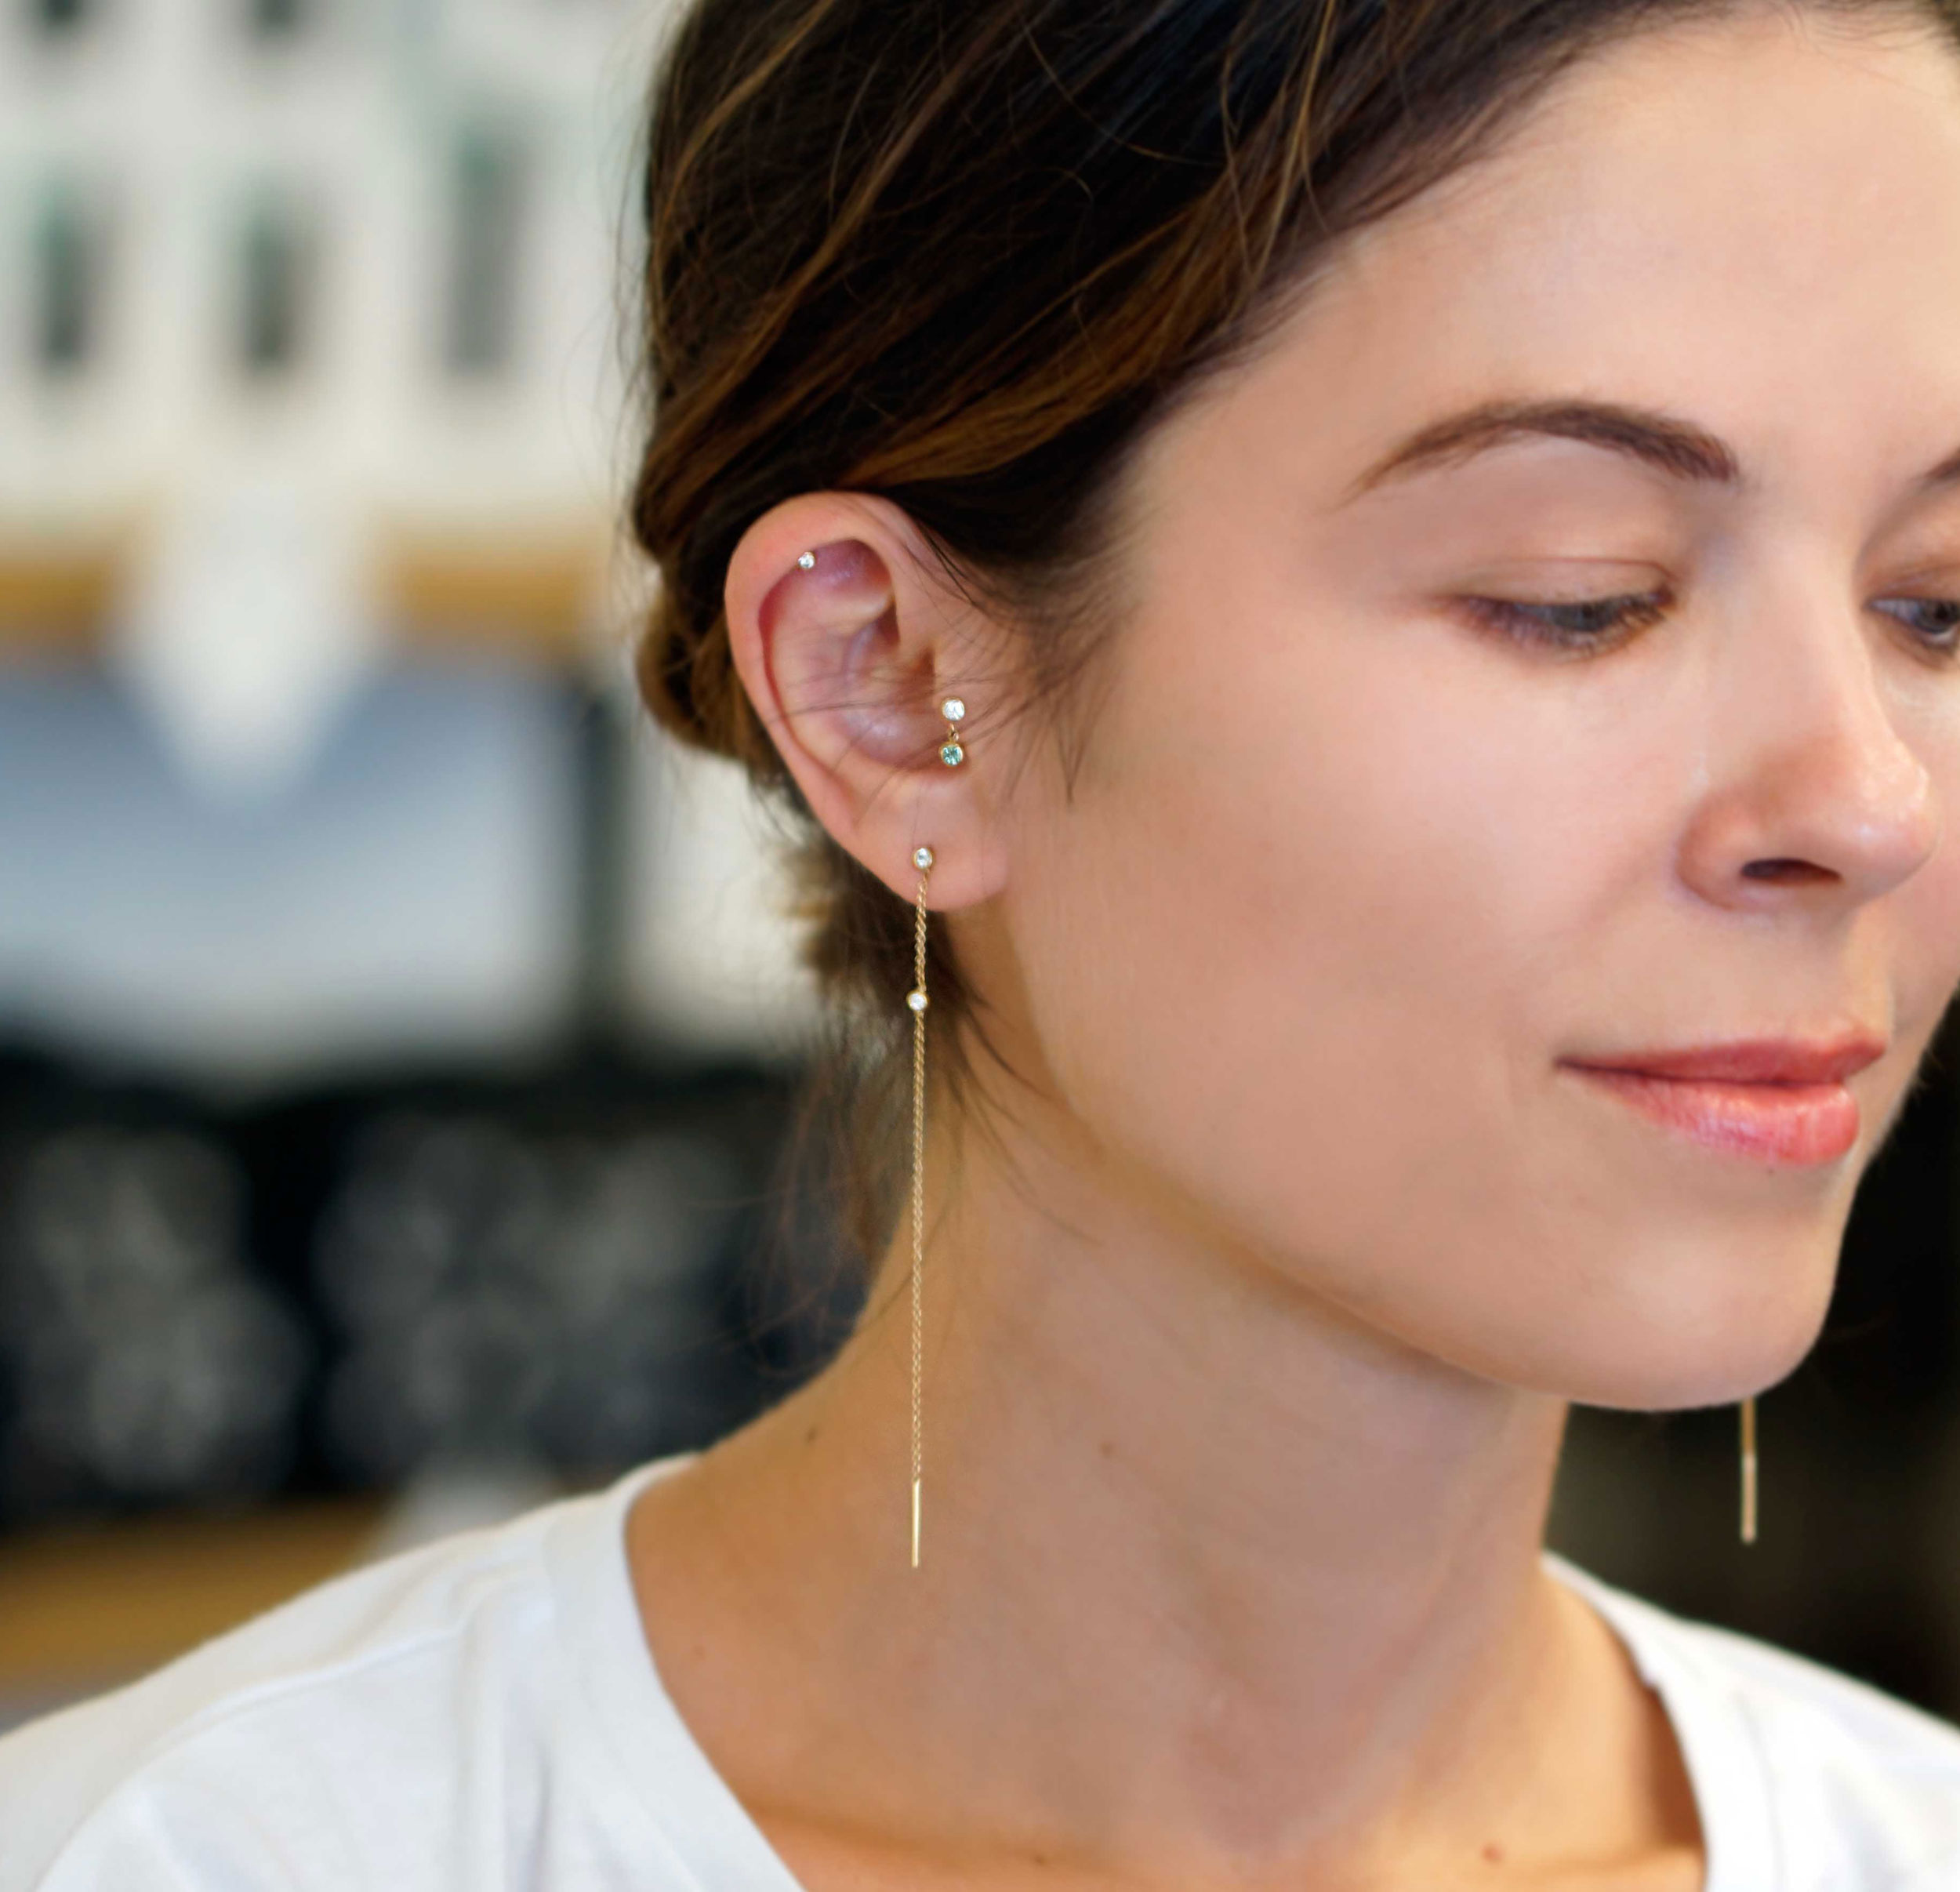 Free Delivery Solid 18k gold Precious stones Diamond Piercing Cartilage Earrings Solid Gold Piercing Earrings Helix earrings Tragus piercings The upper lobe piercings Rook Piercing Earrings Stacked Piercing